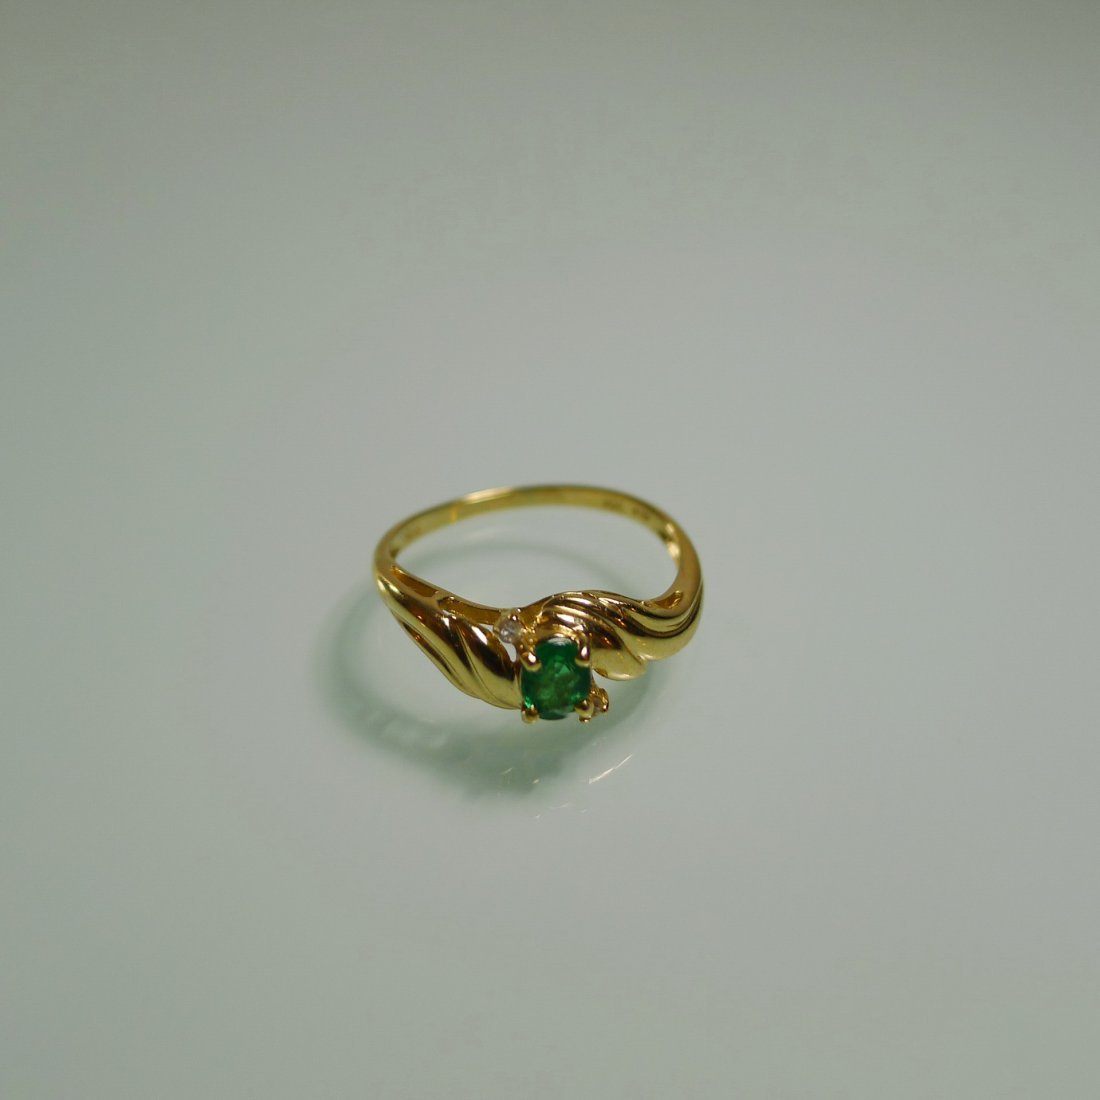 18K YELLOW GOLD NATURAL EMERALD RING